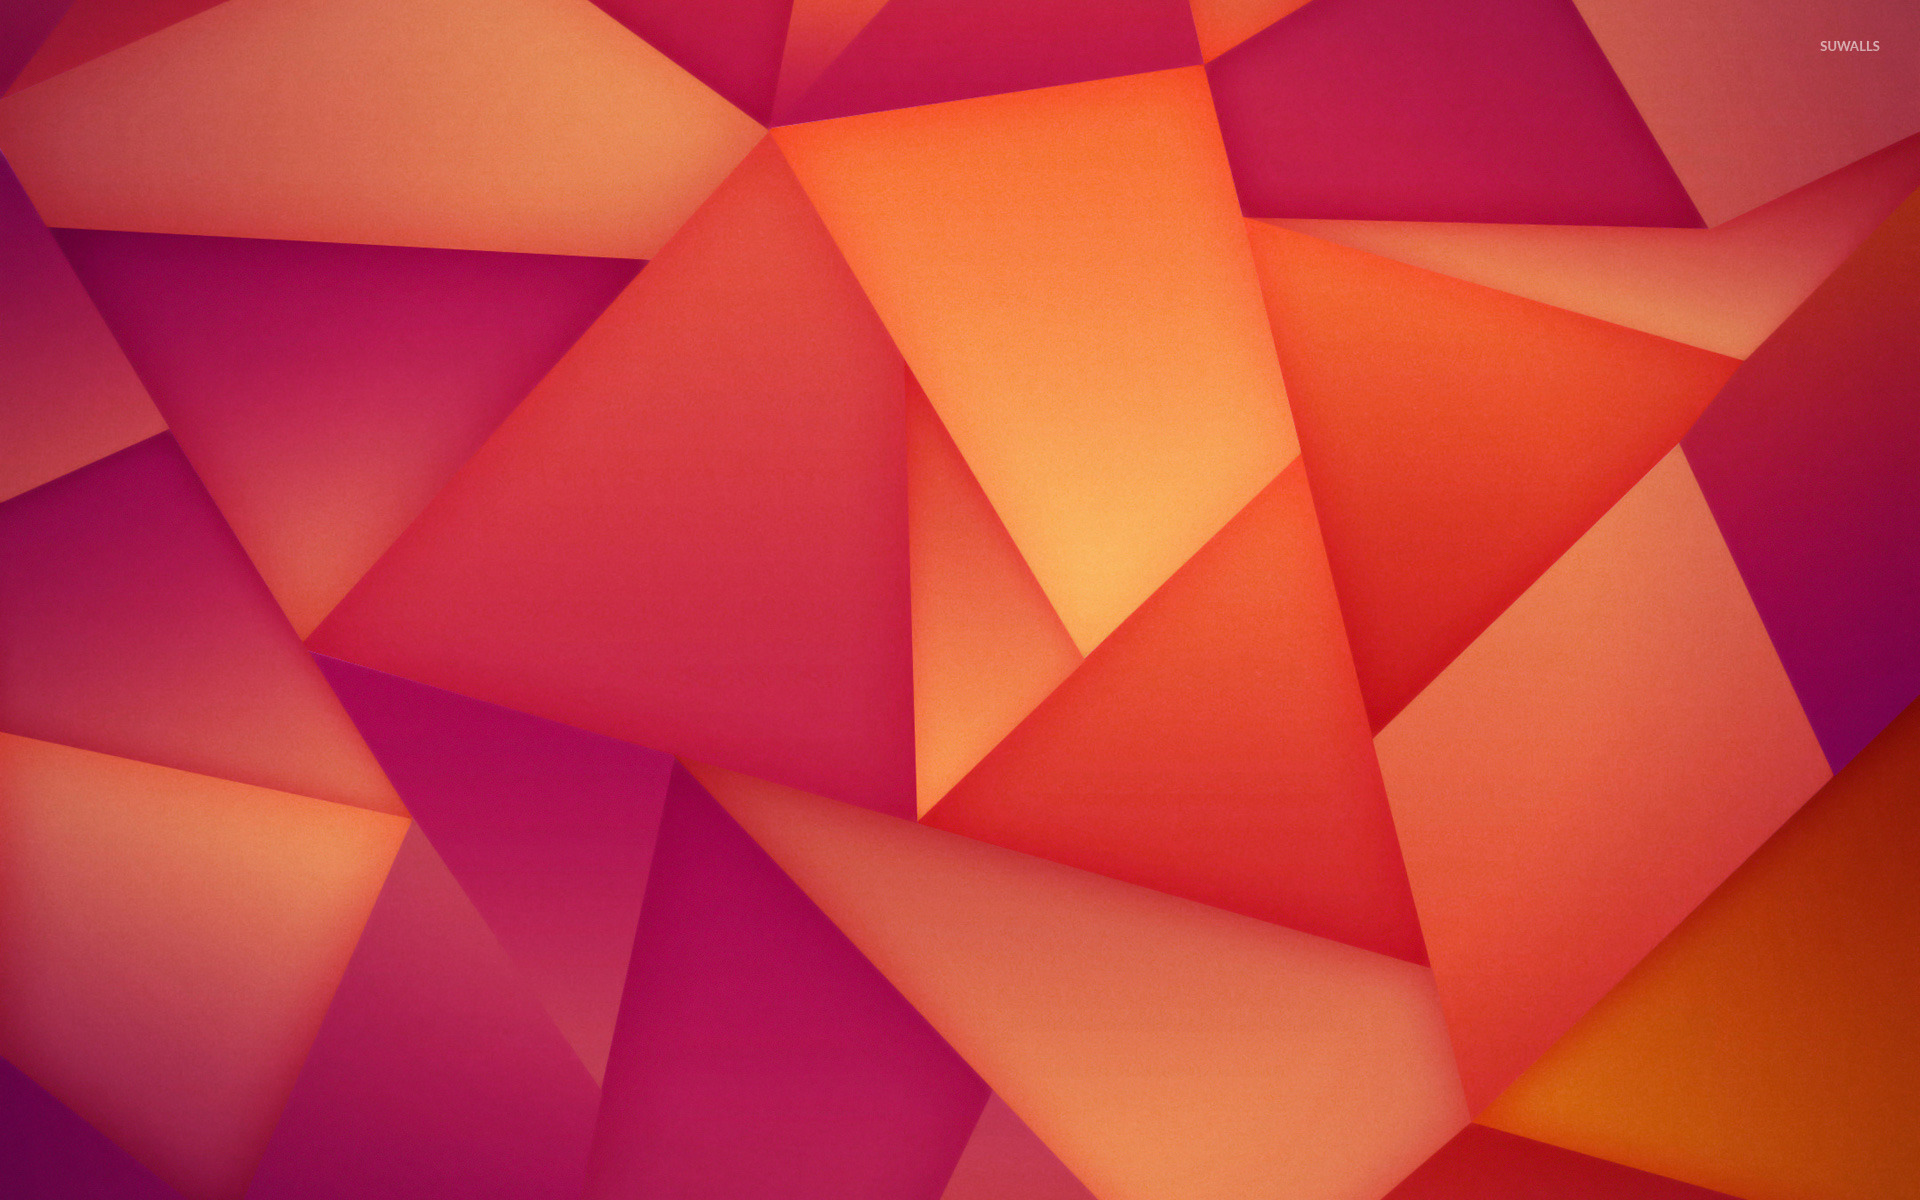 Orange and purple polygons wallpaper abstract wallpapers for Orange and purple walls